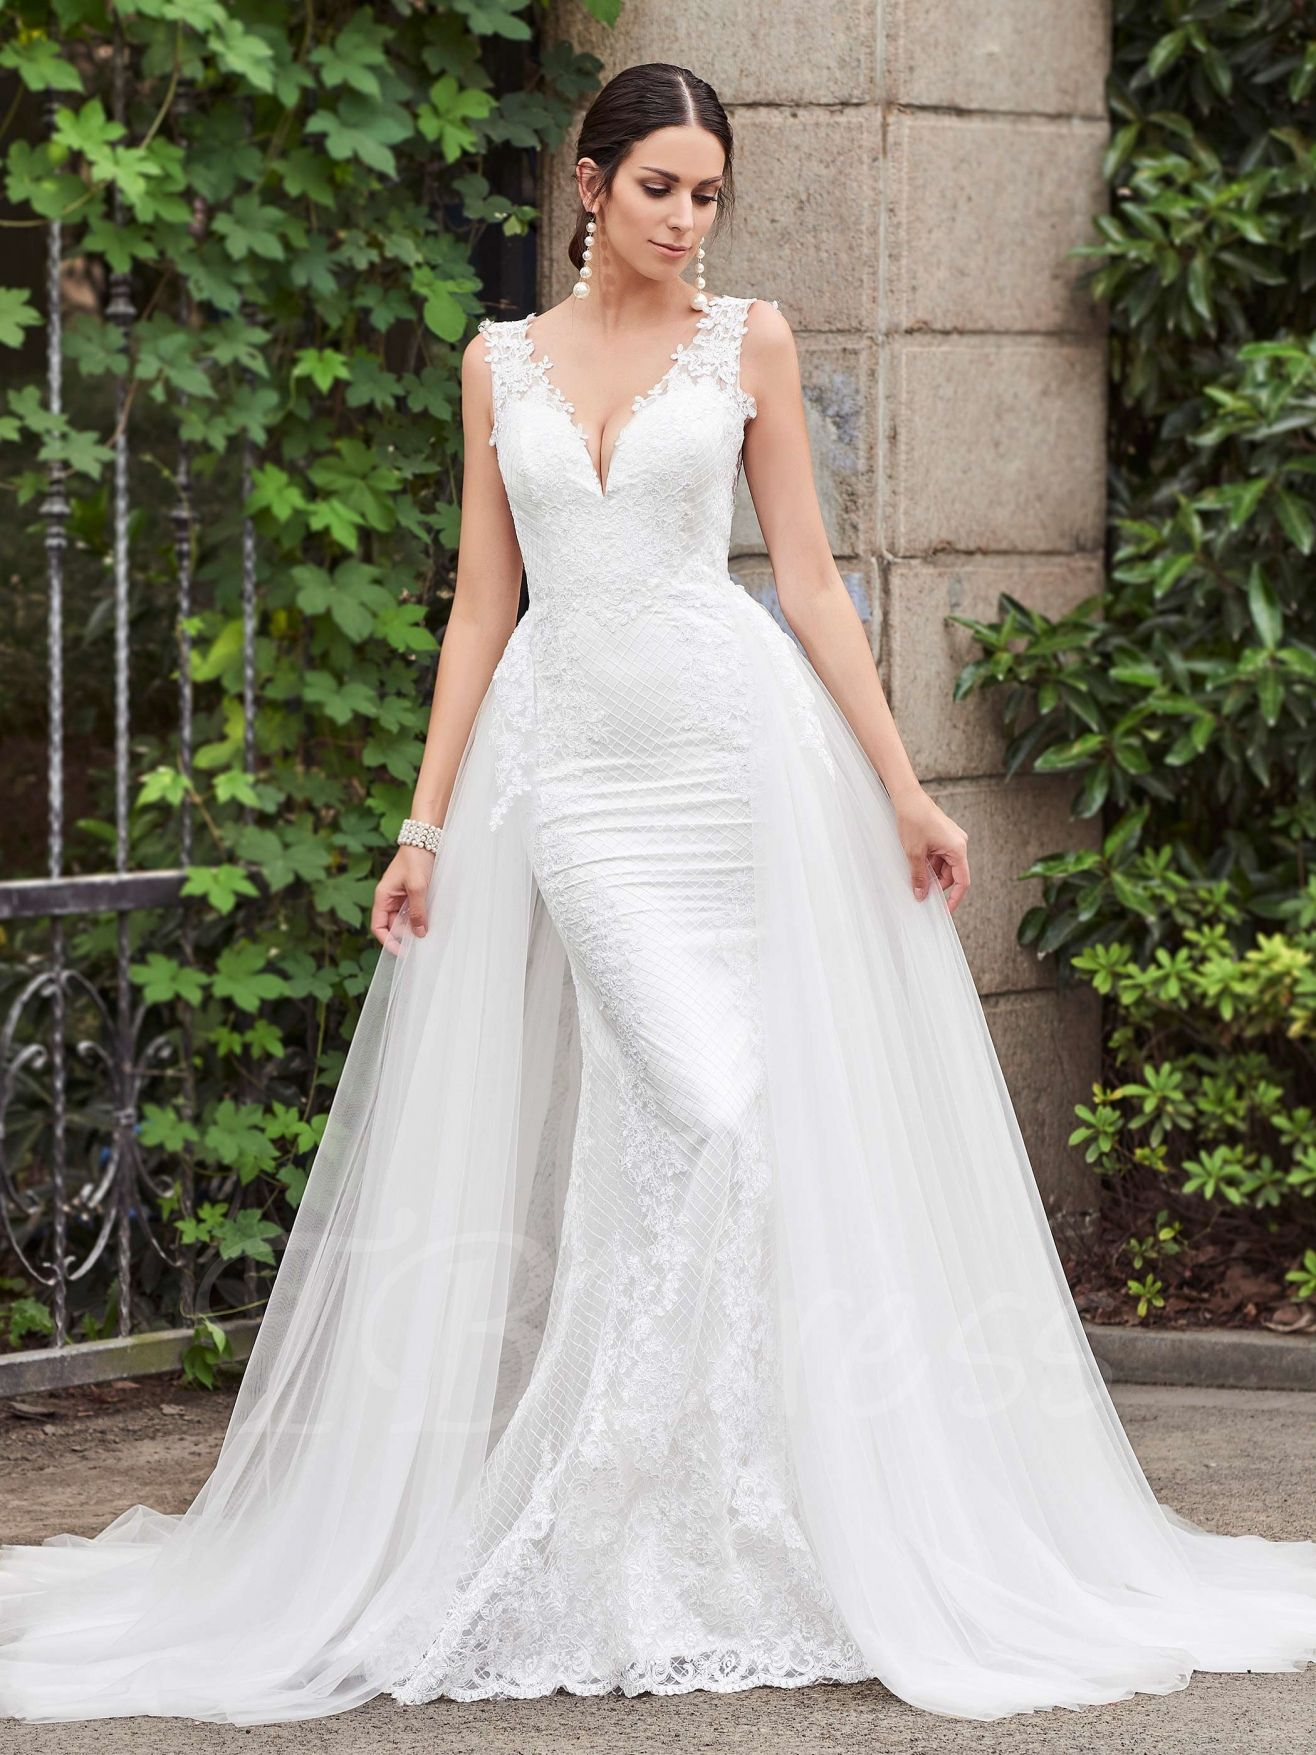 99 Tb Wedding Dresses Plus Size For Guest Check More At Http